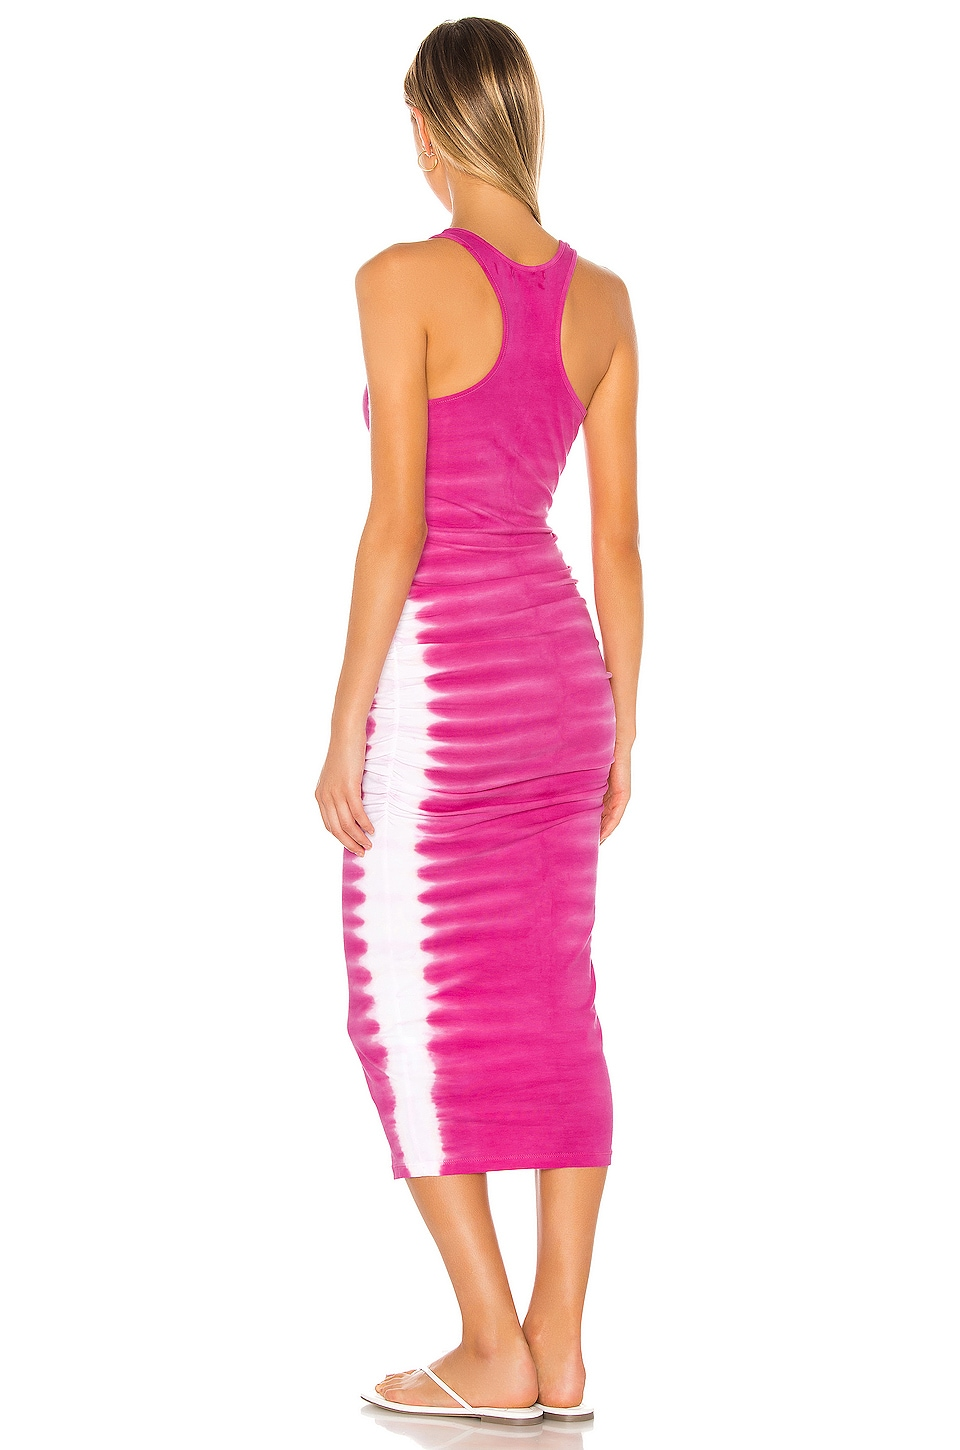 Flame Wash Midi Dress, view 3, click to view large image.